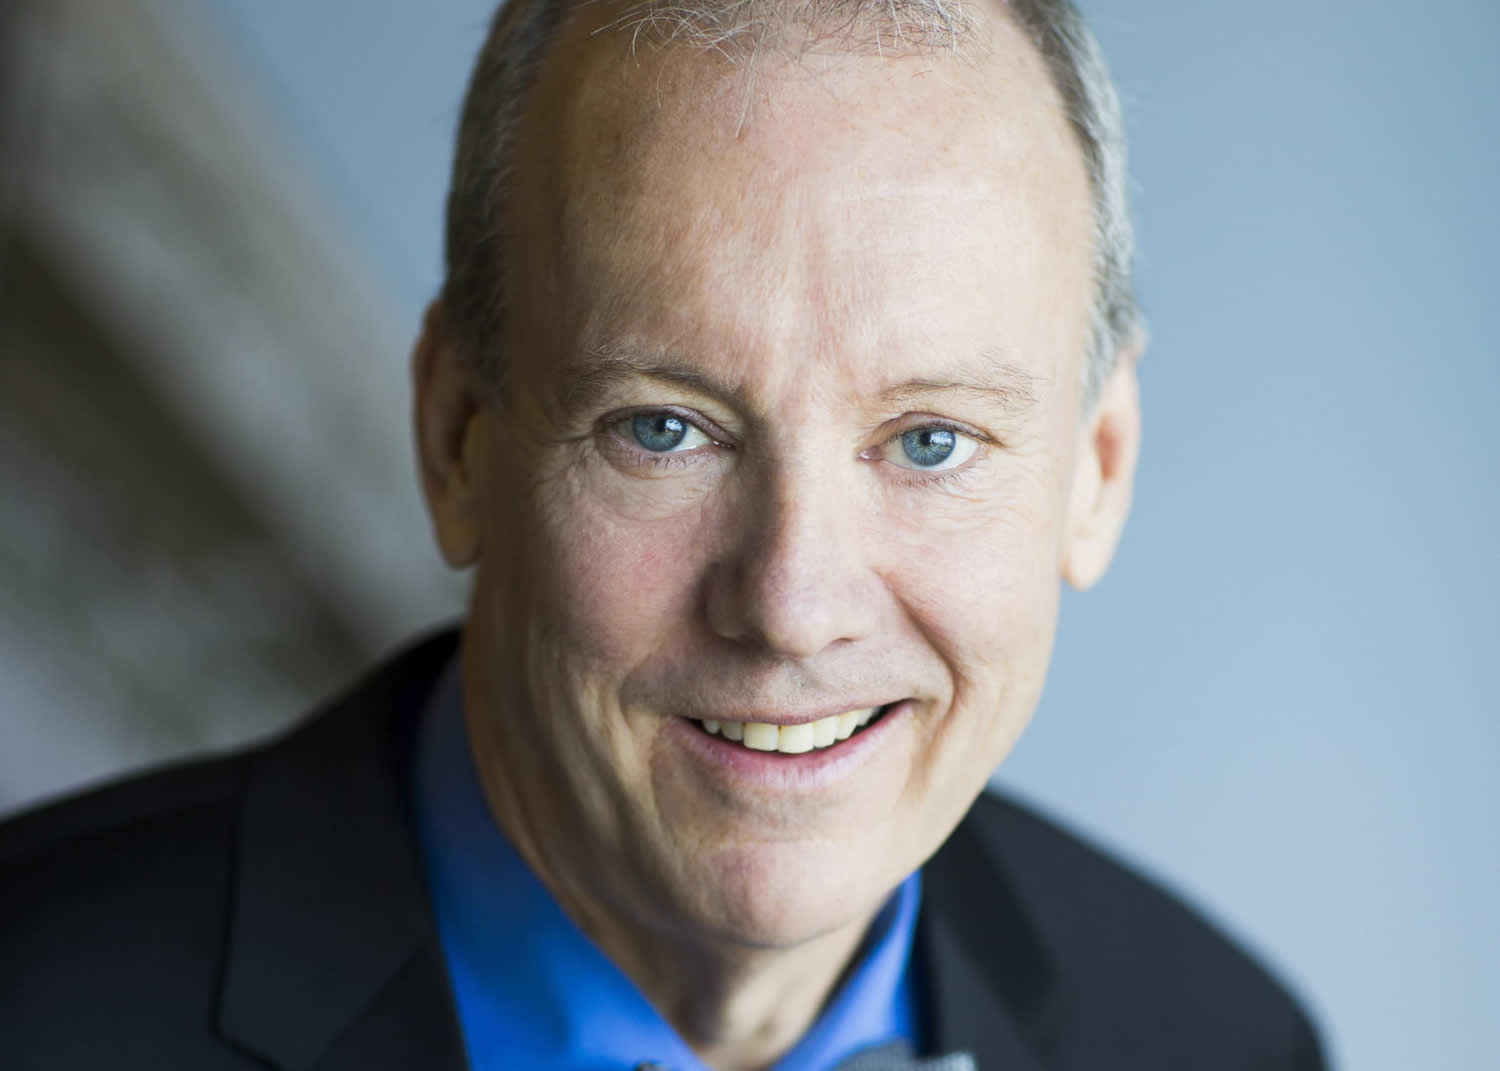 naem-2014-07-16-latest-news-william-mcdonough-to-share-roadmap-for-sustainable-innovation-at-2014-naem-forum-700x500